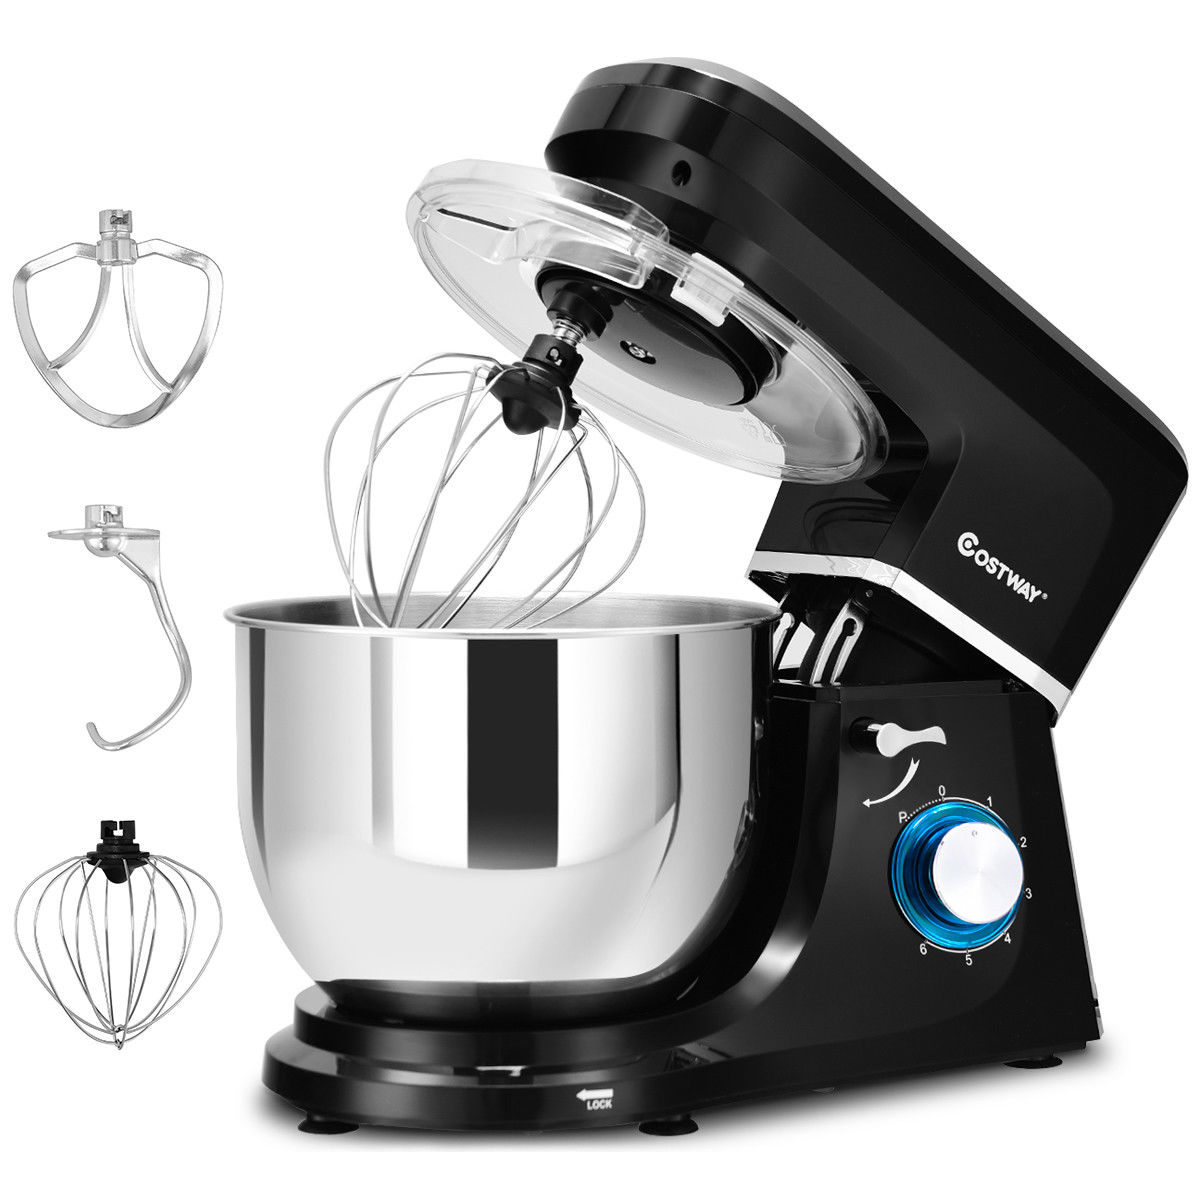 Costway Electric Food Stand Mixer 6 Speed 7.5Qt 660W Tilt-Head Stainless Steel Bowl